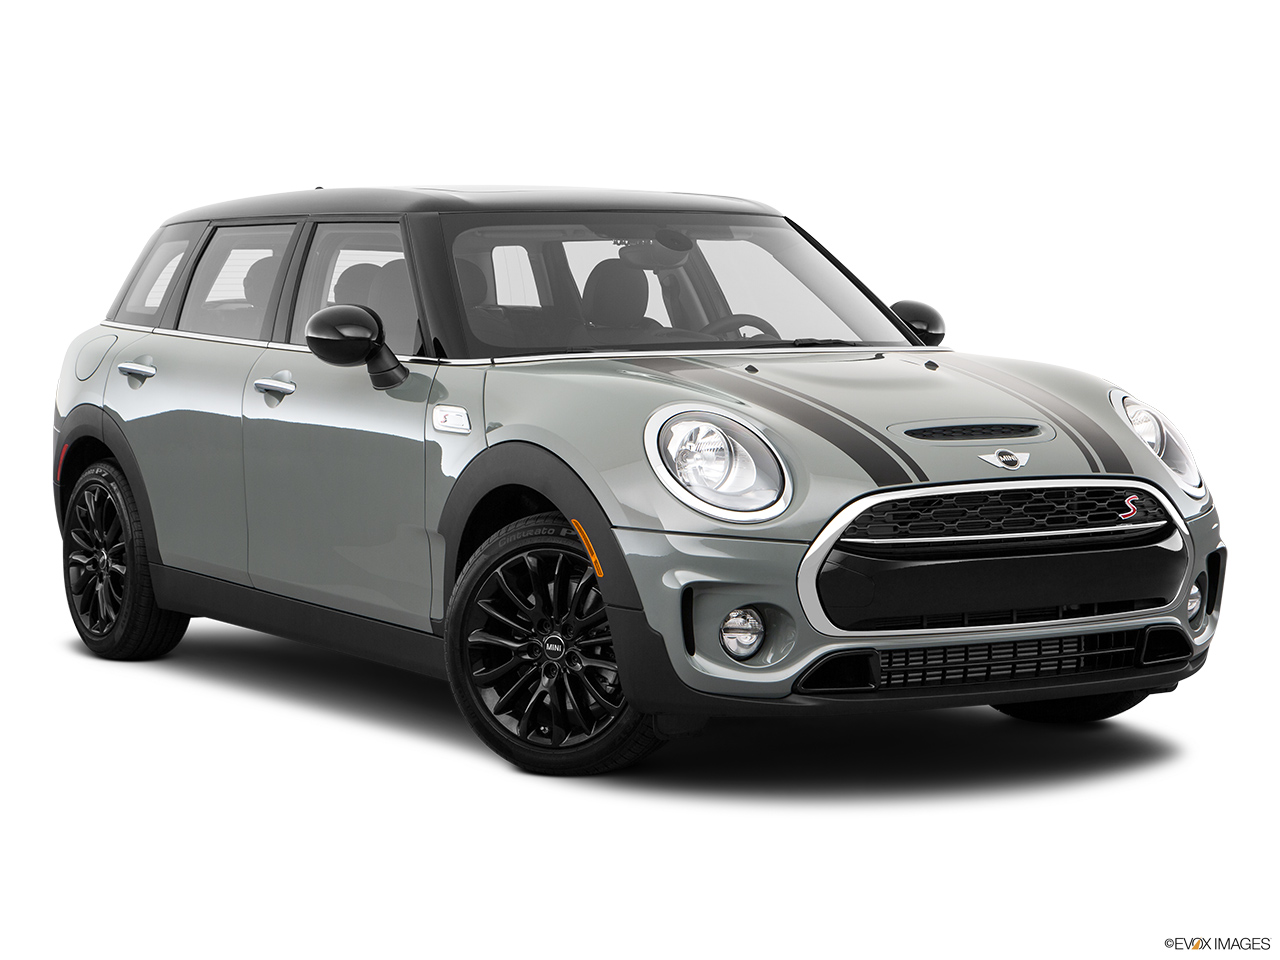 car features list for mini clubman 2018 cooper s qatar yallamotor. Black Bedroom Furniture Sets. Home Design Ideas